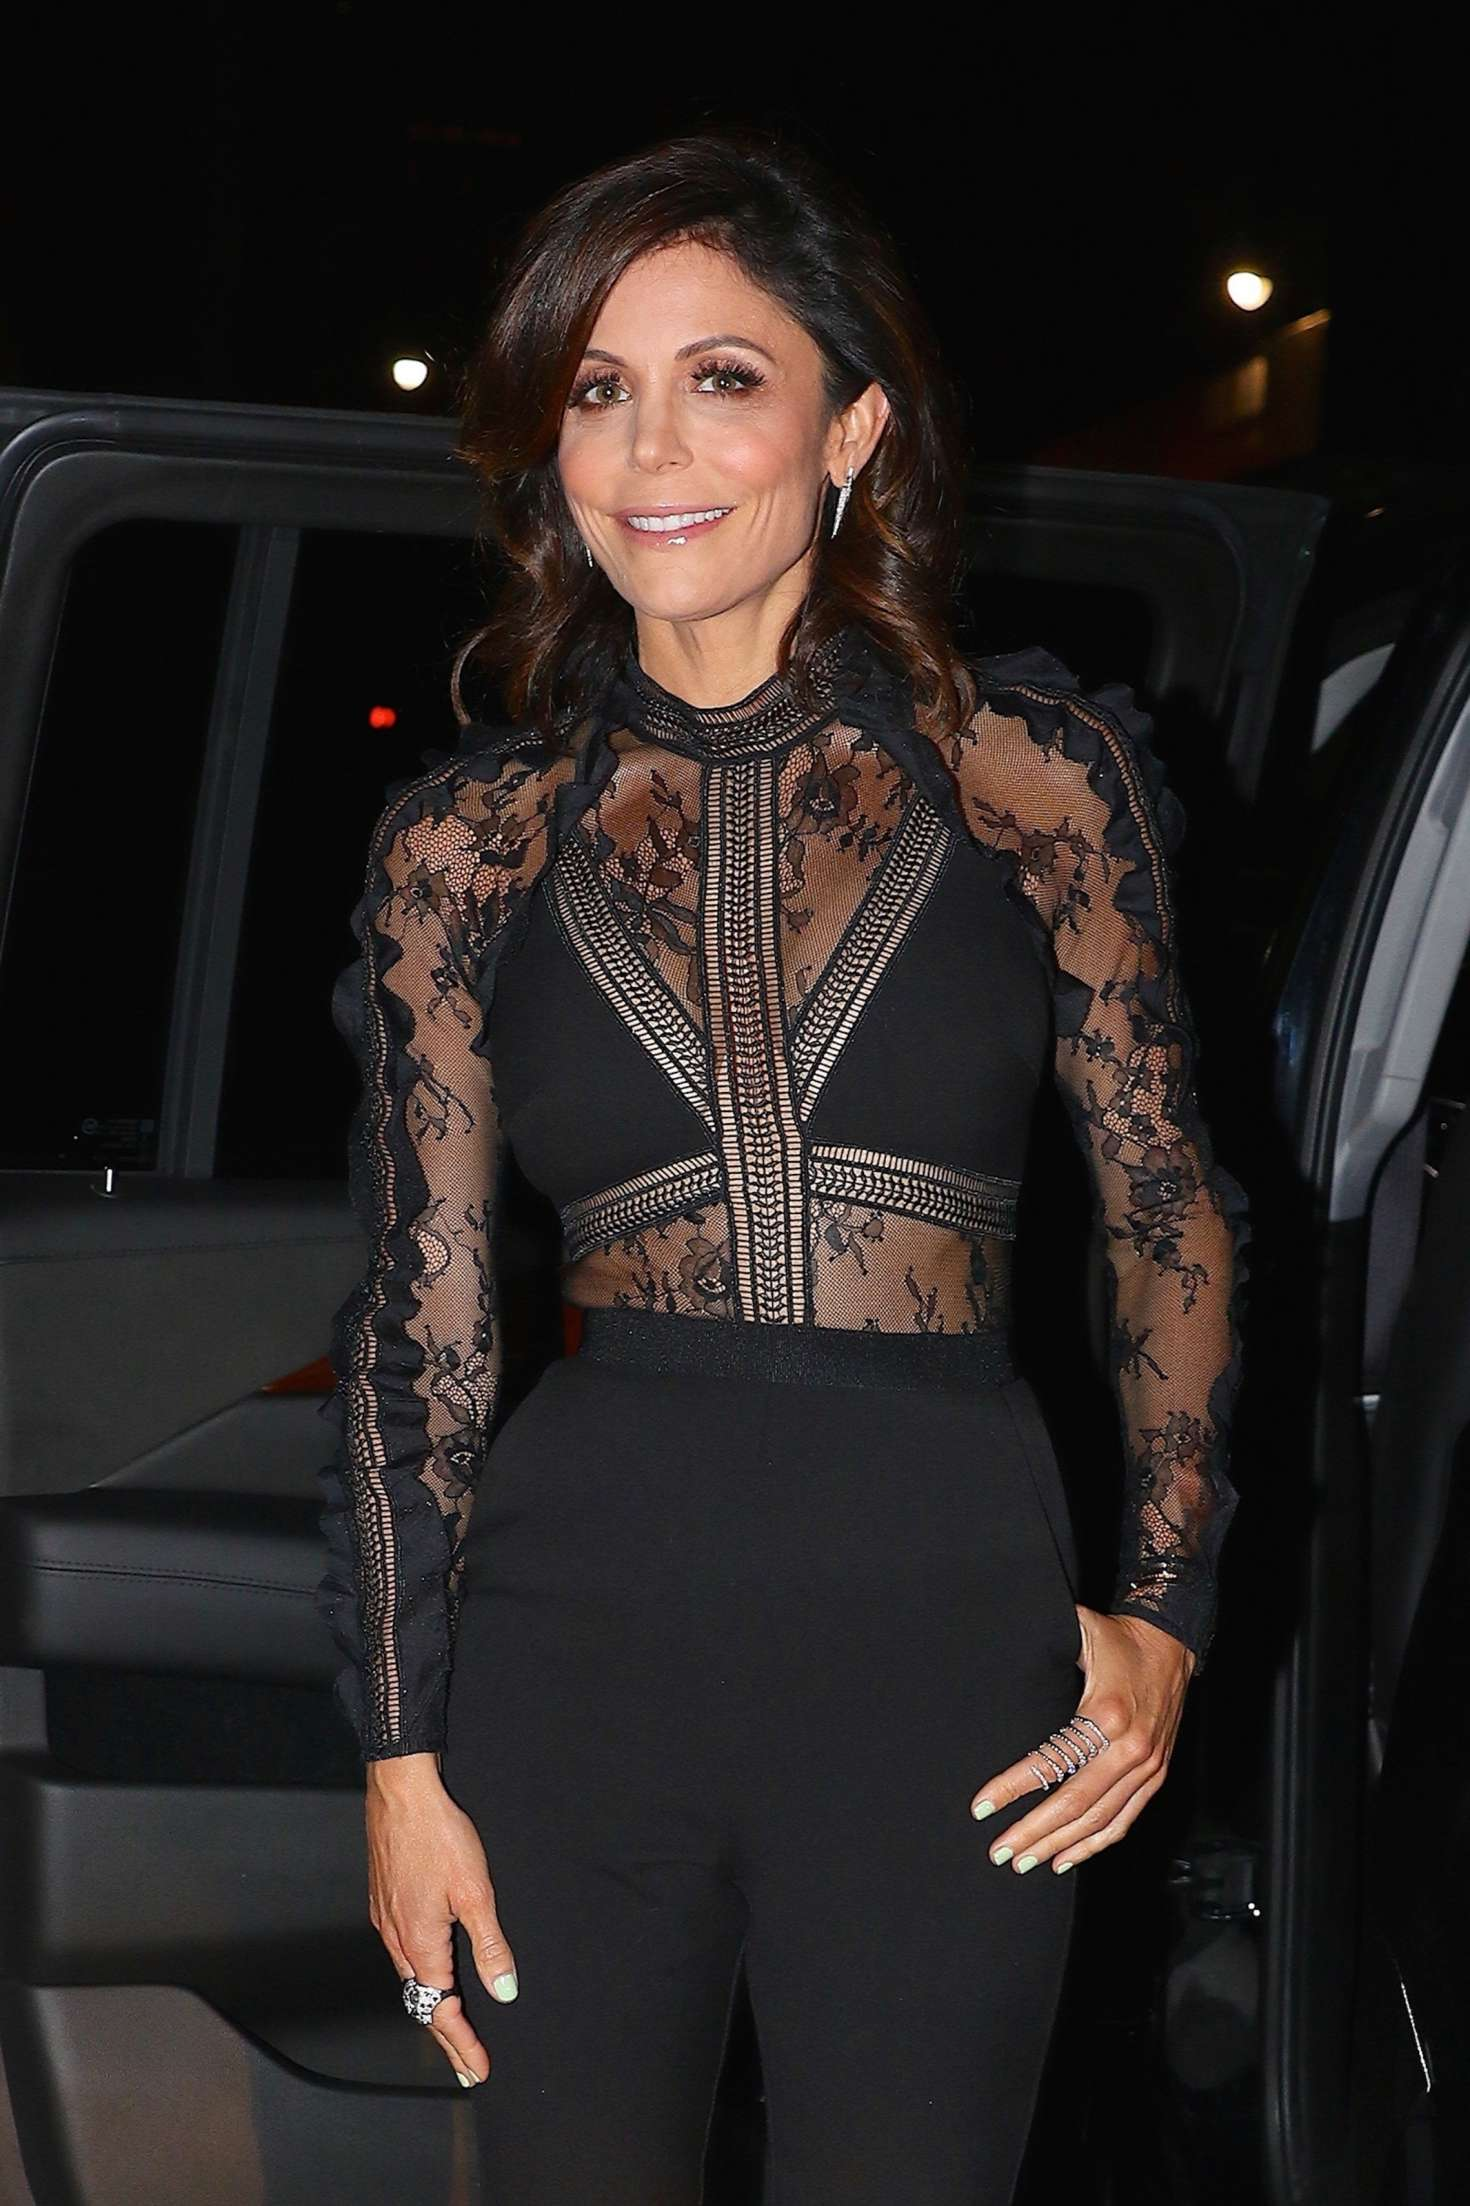 Bethenny Frankel Arrives at 'Watch What Happens Live' in NYC